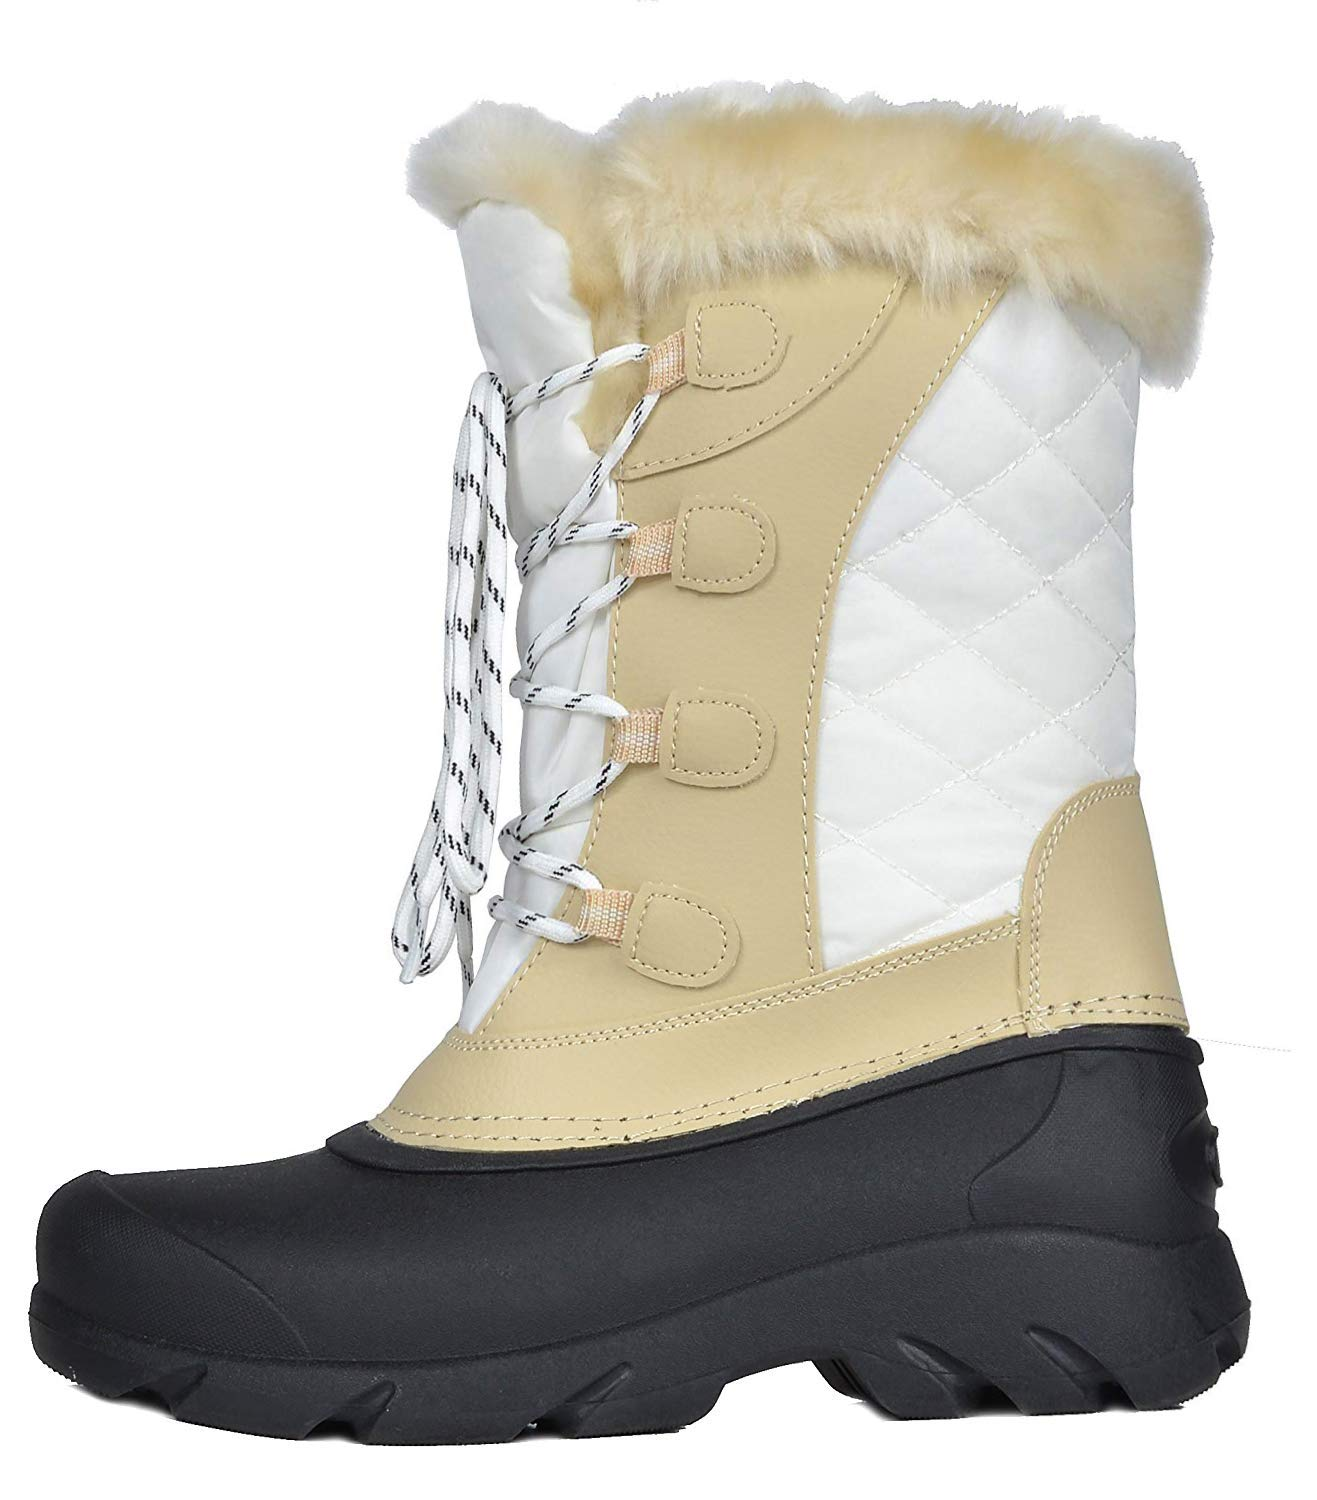 246ddcd7542 Women LINX DREAM PAIRS Women s Faux Fur Lined Mid Calf Winter Snow Boots